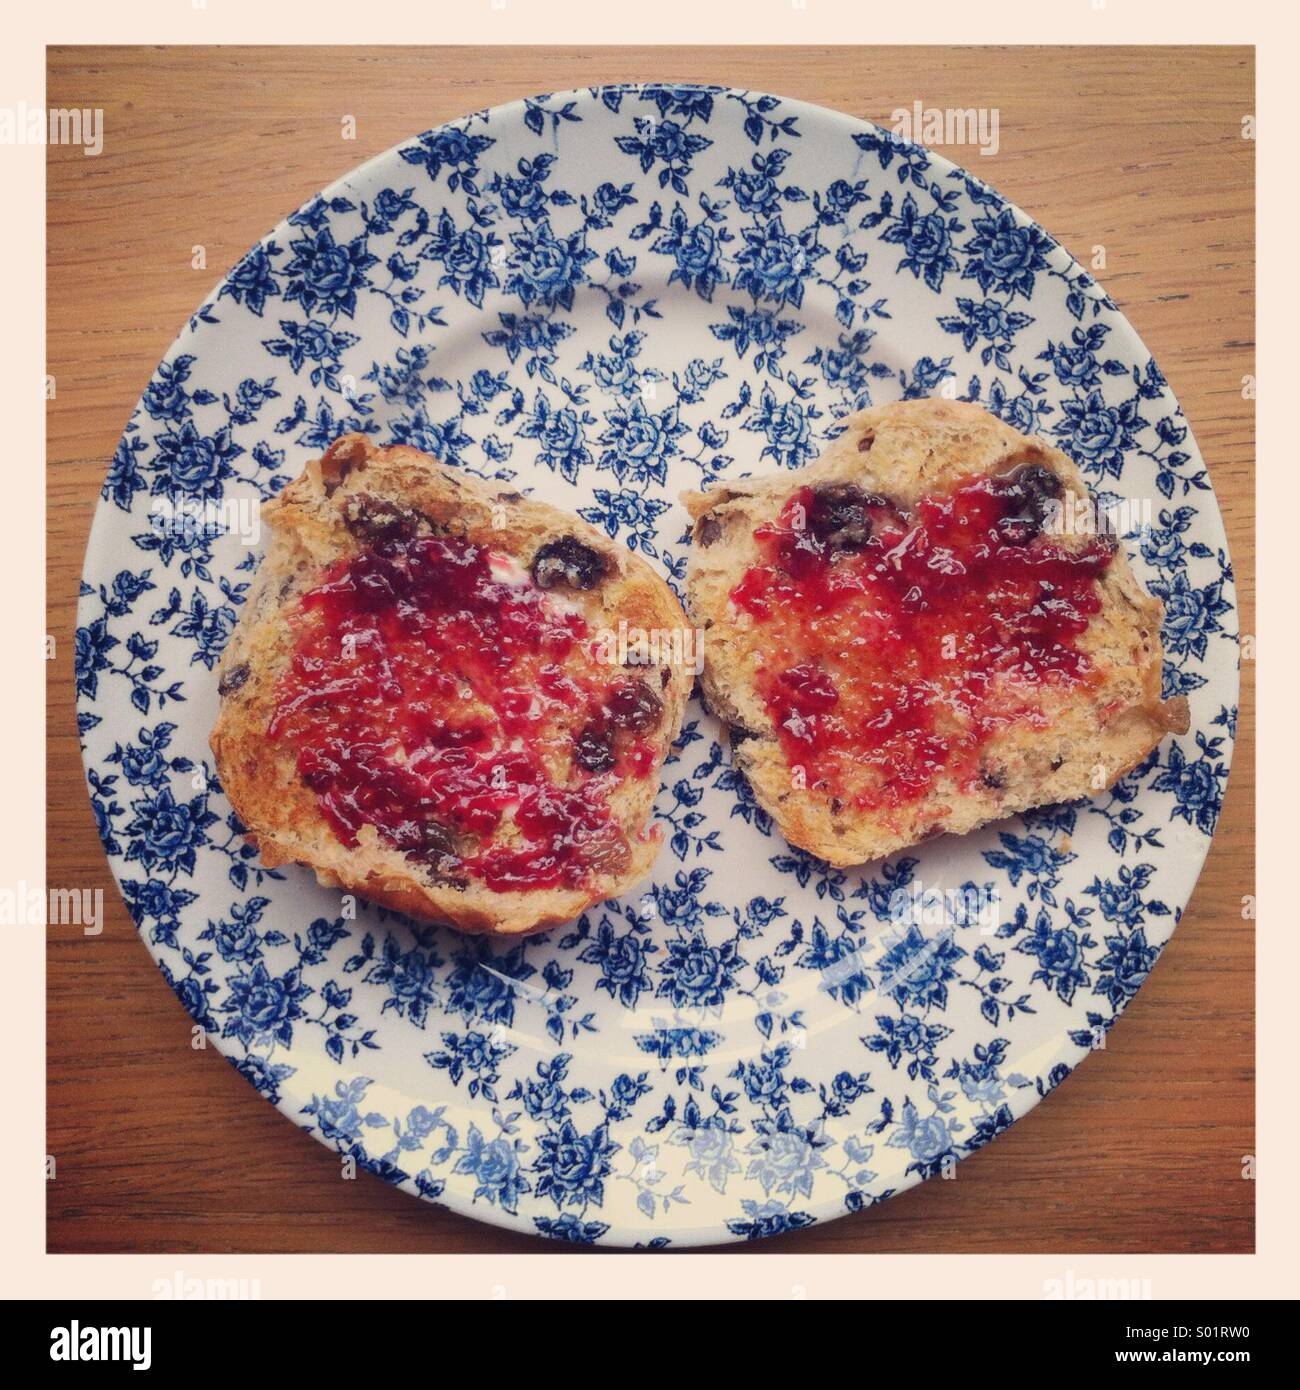 Jam on two toasted halves of a hot cross bun, on a vintage blue and white floral plate. - Stock Image